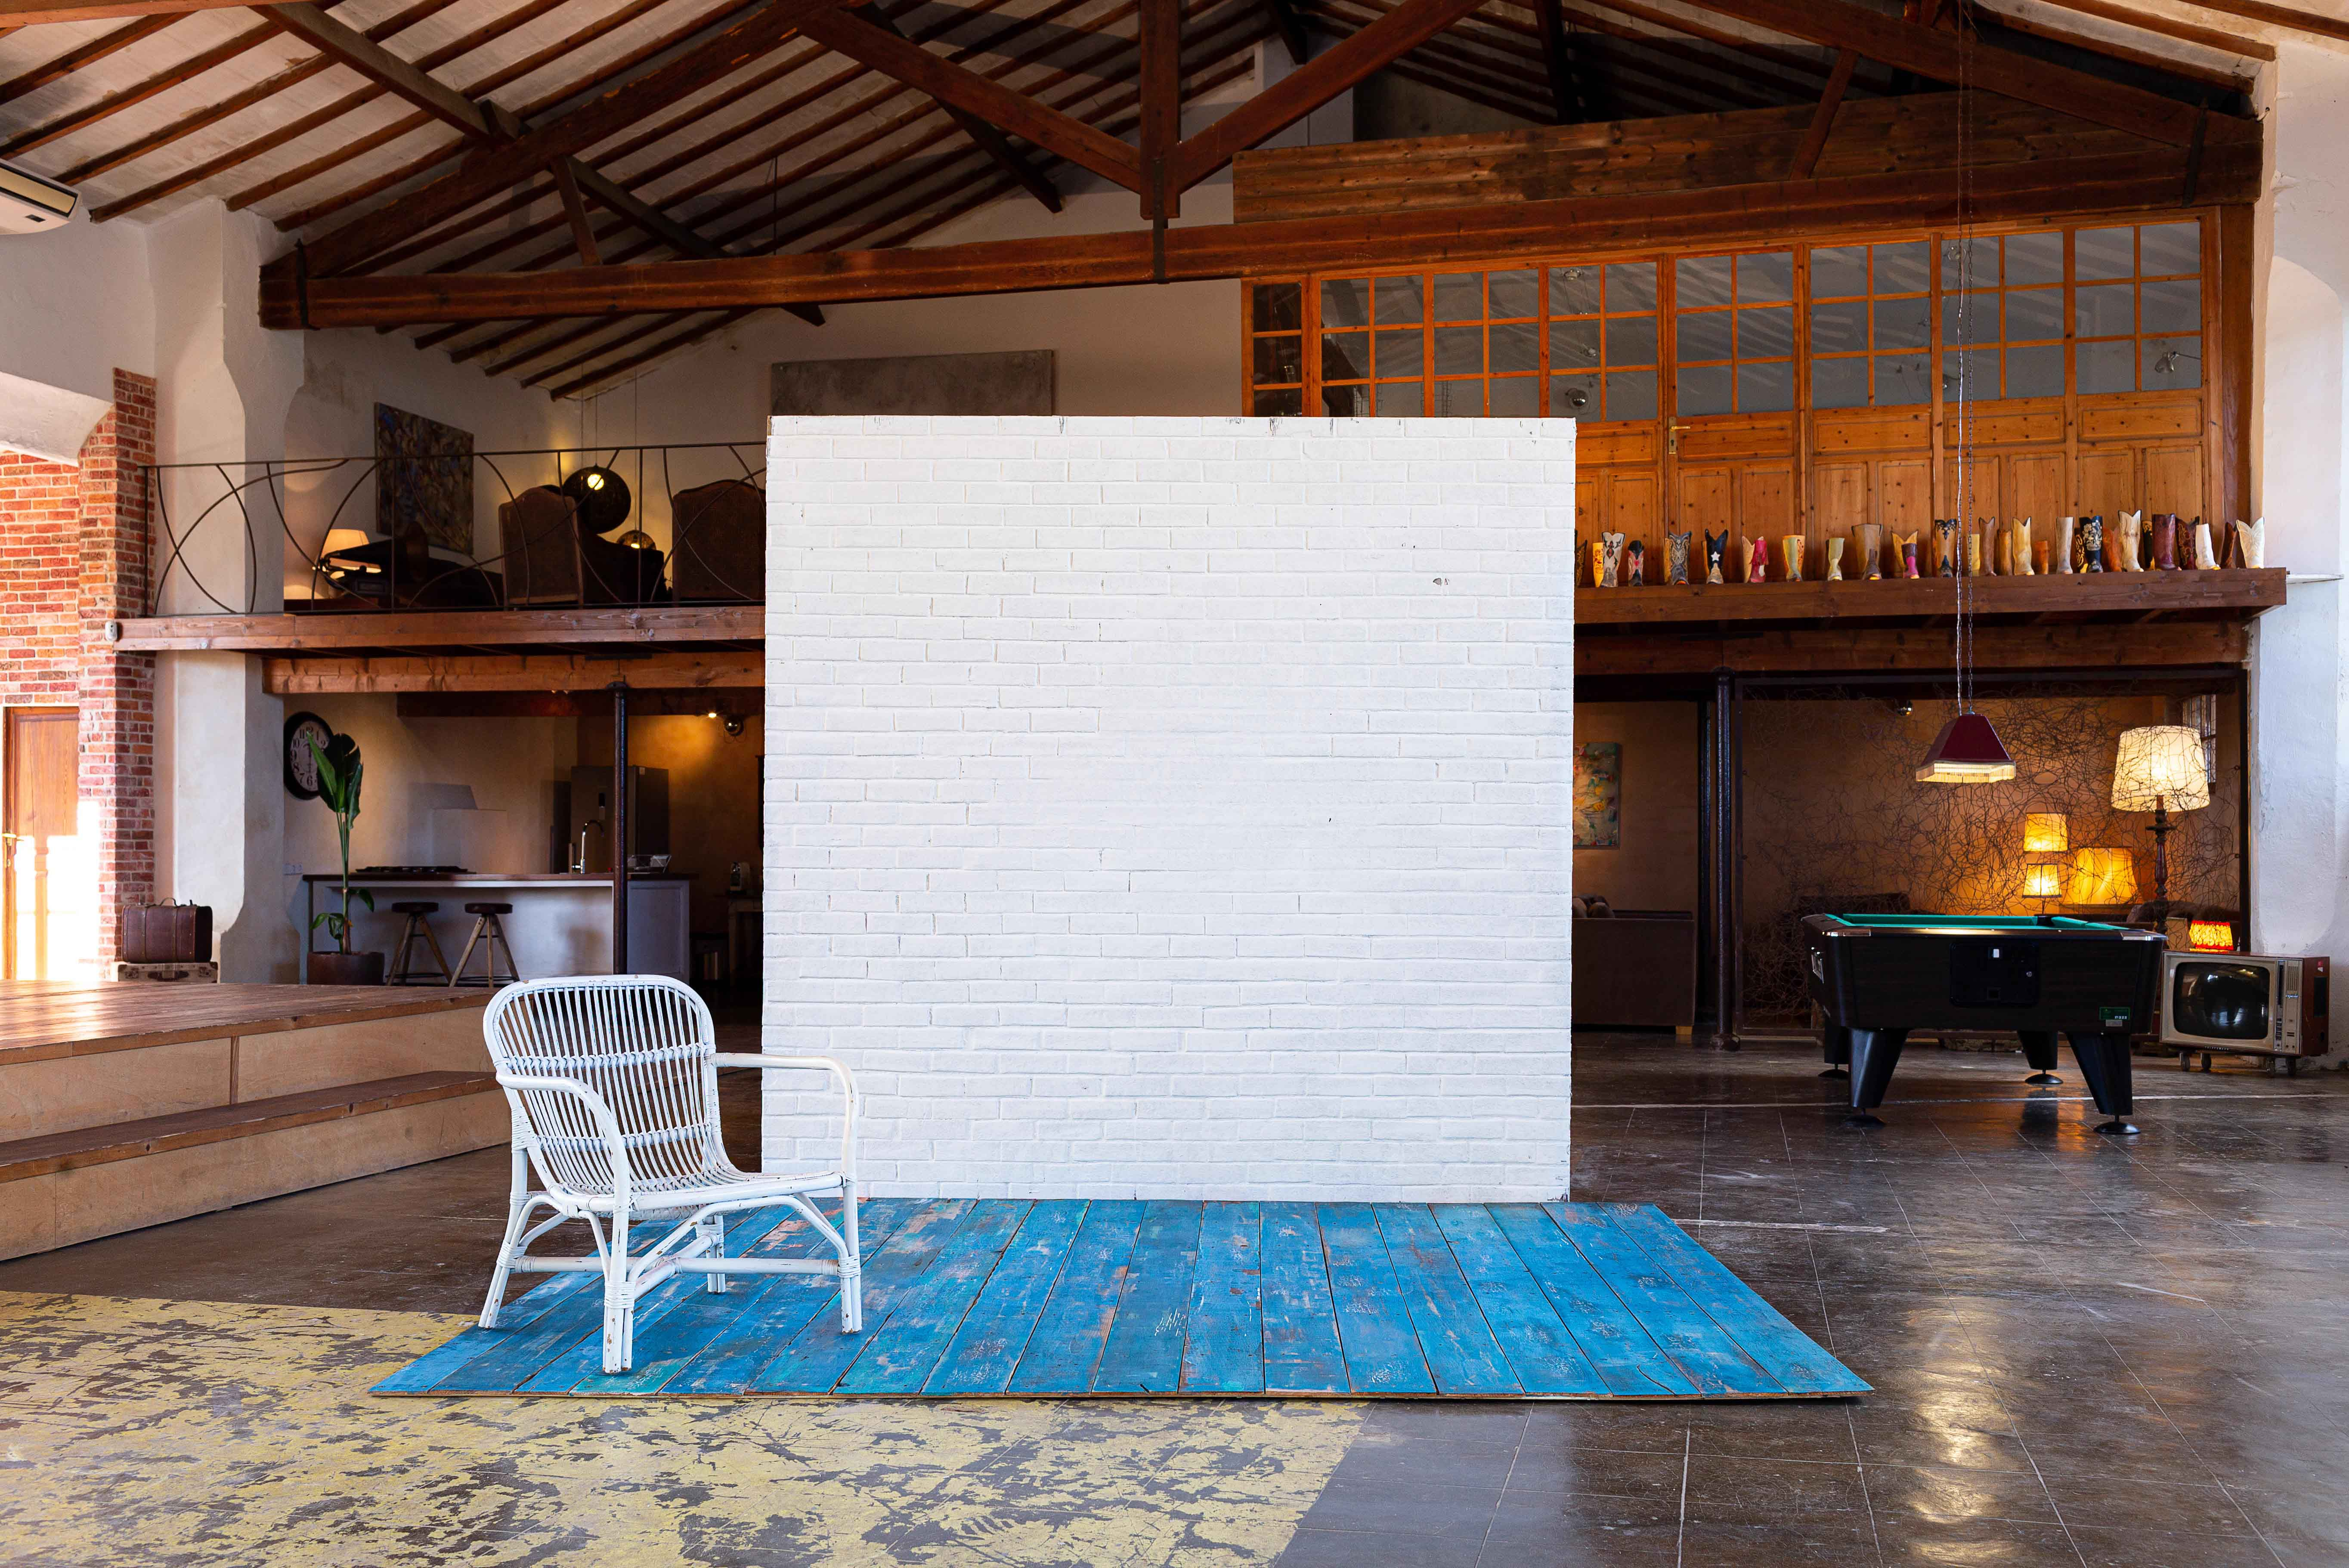 Paintable Brick Wall & Blue Floor